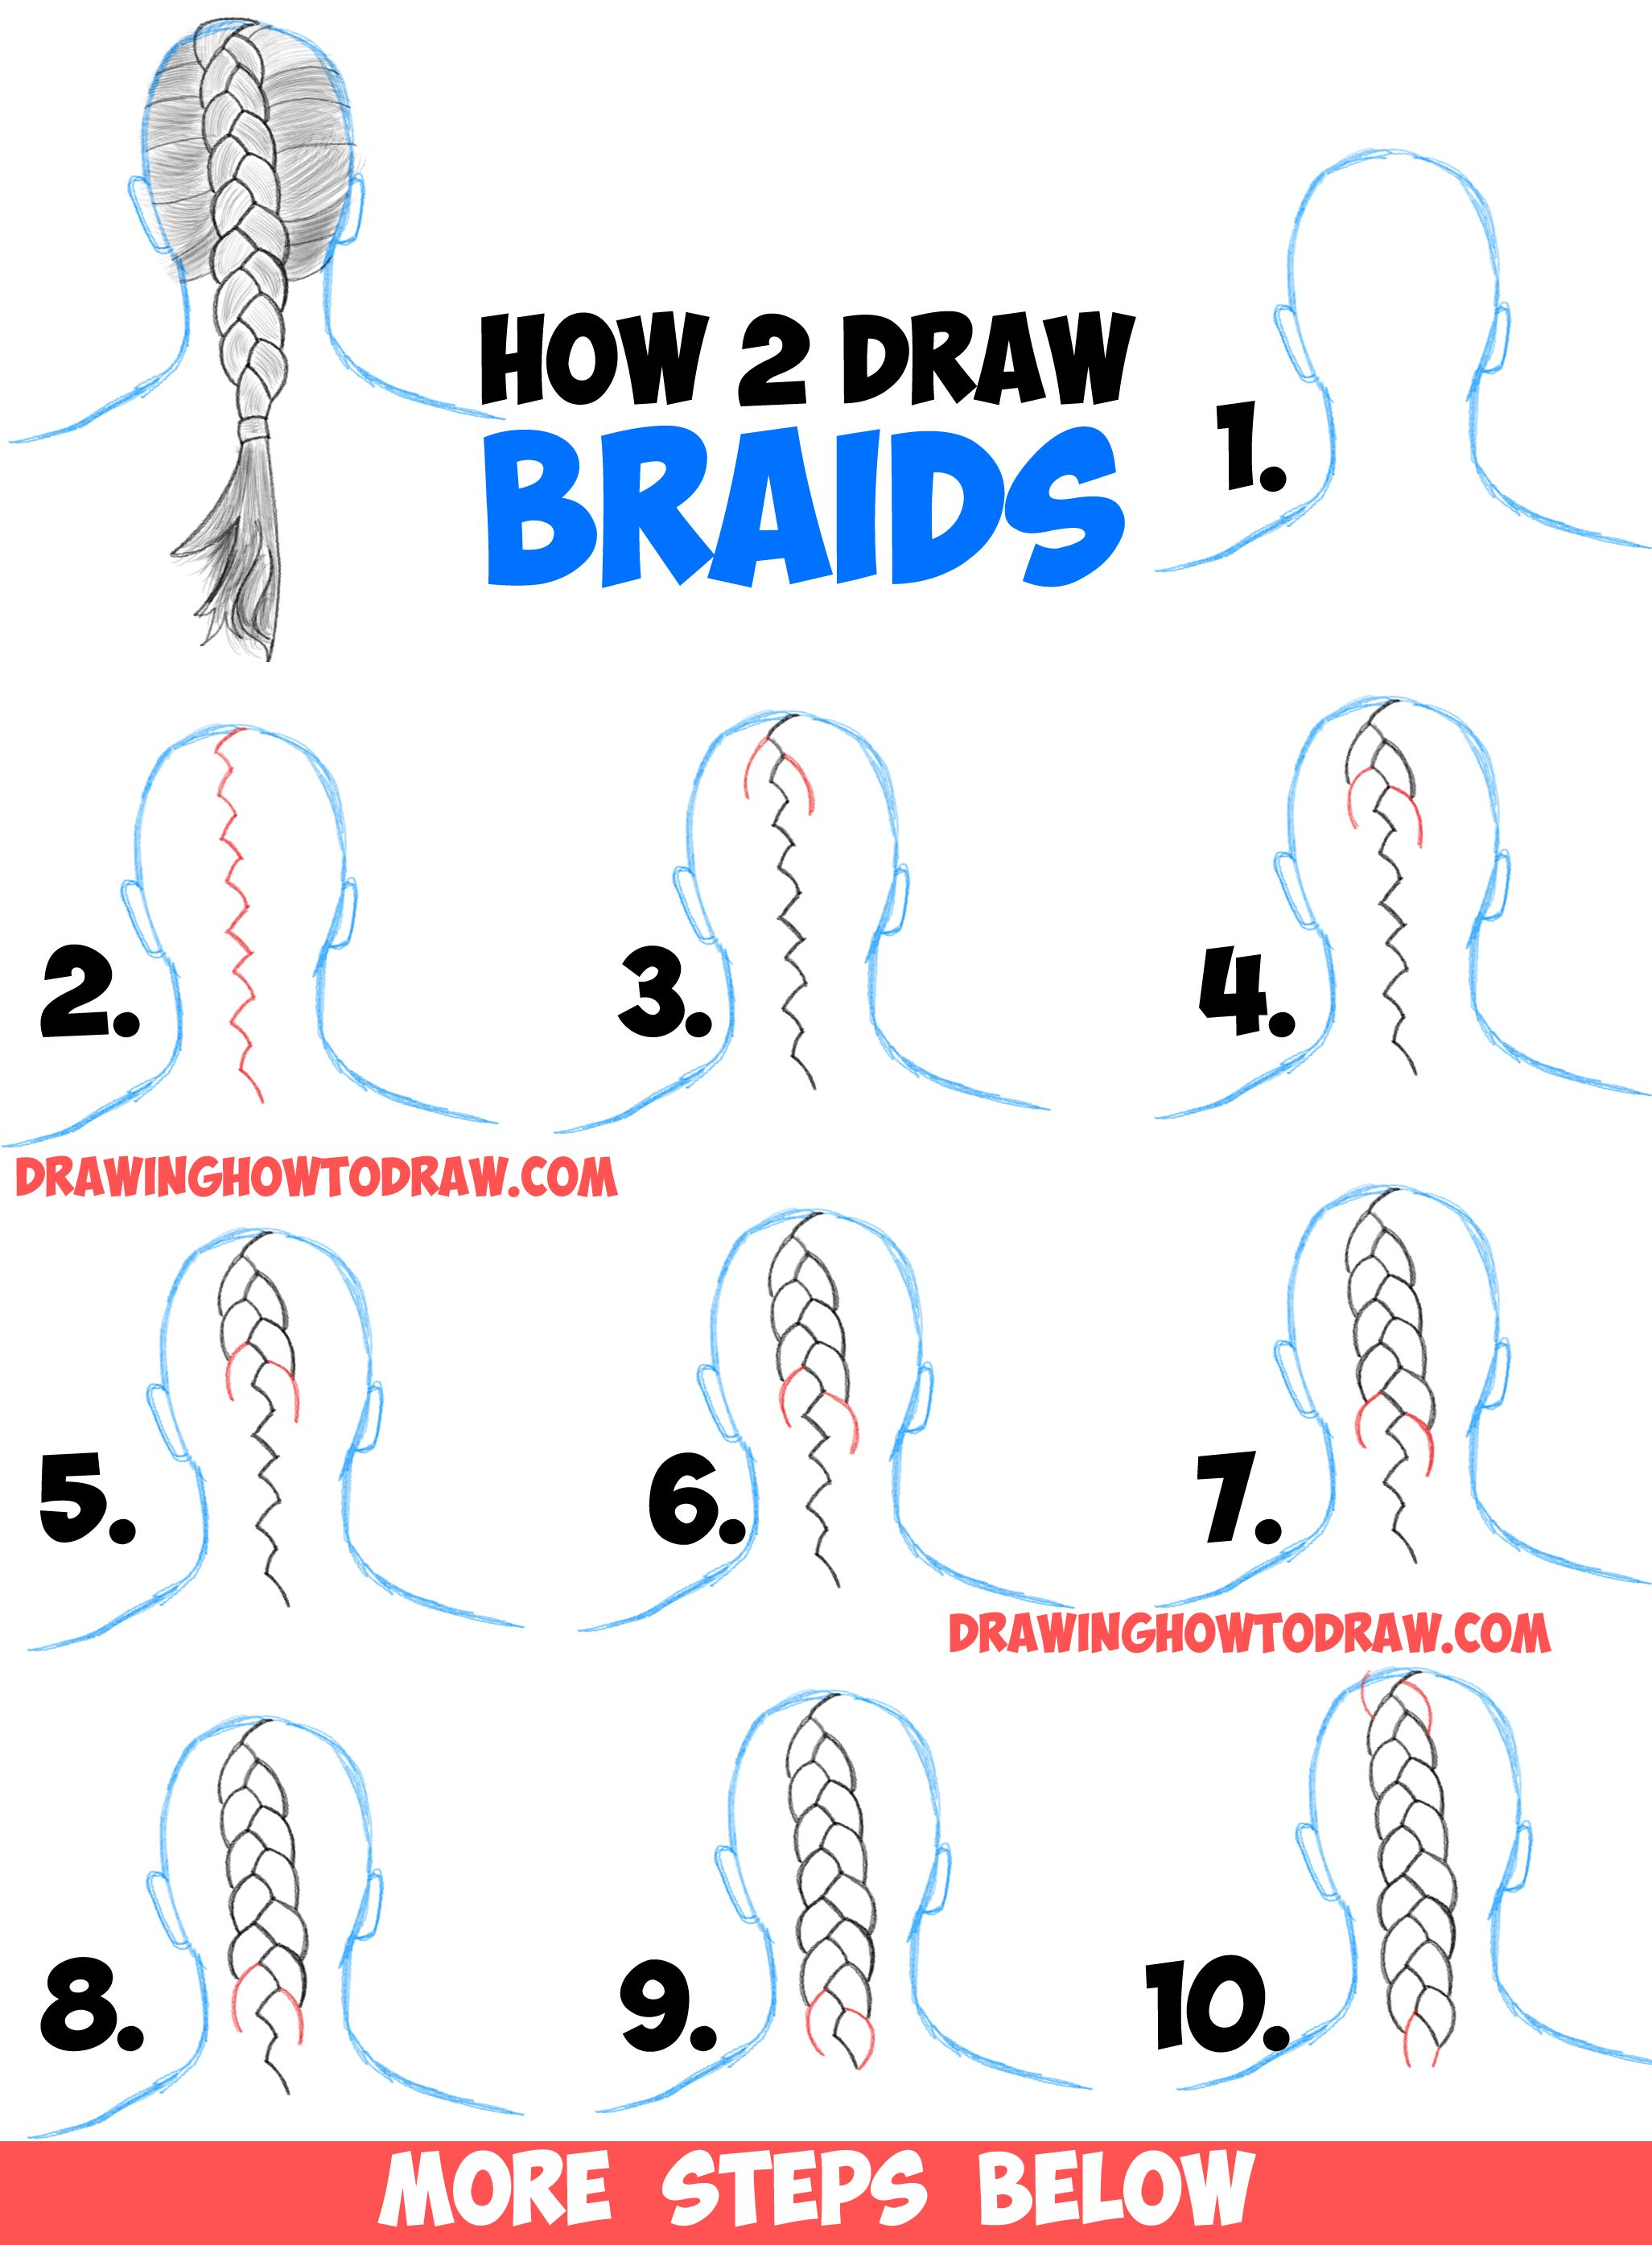 How to draw braids with easy step by step drawing tutorial